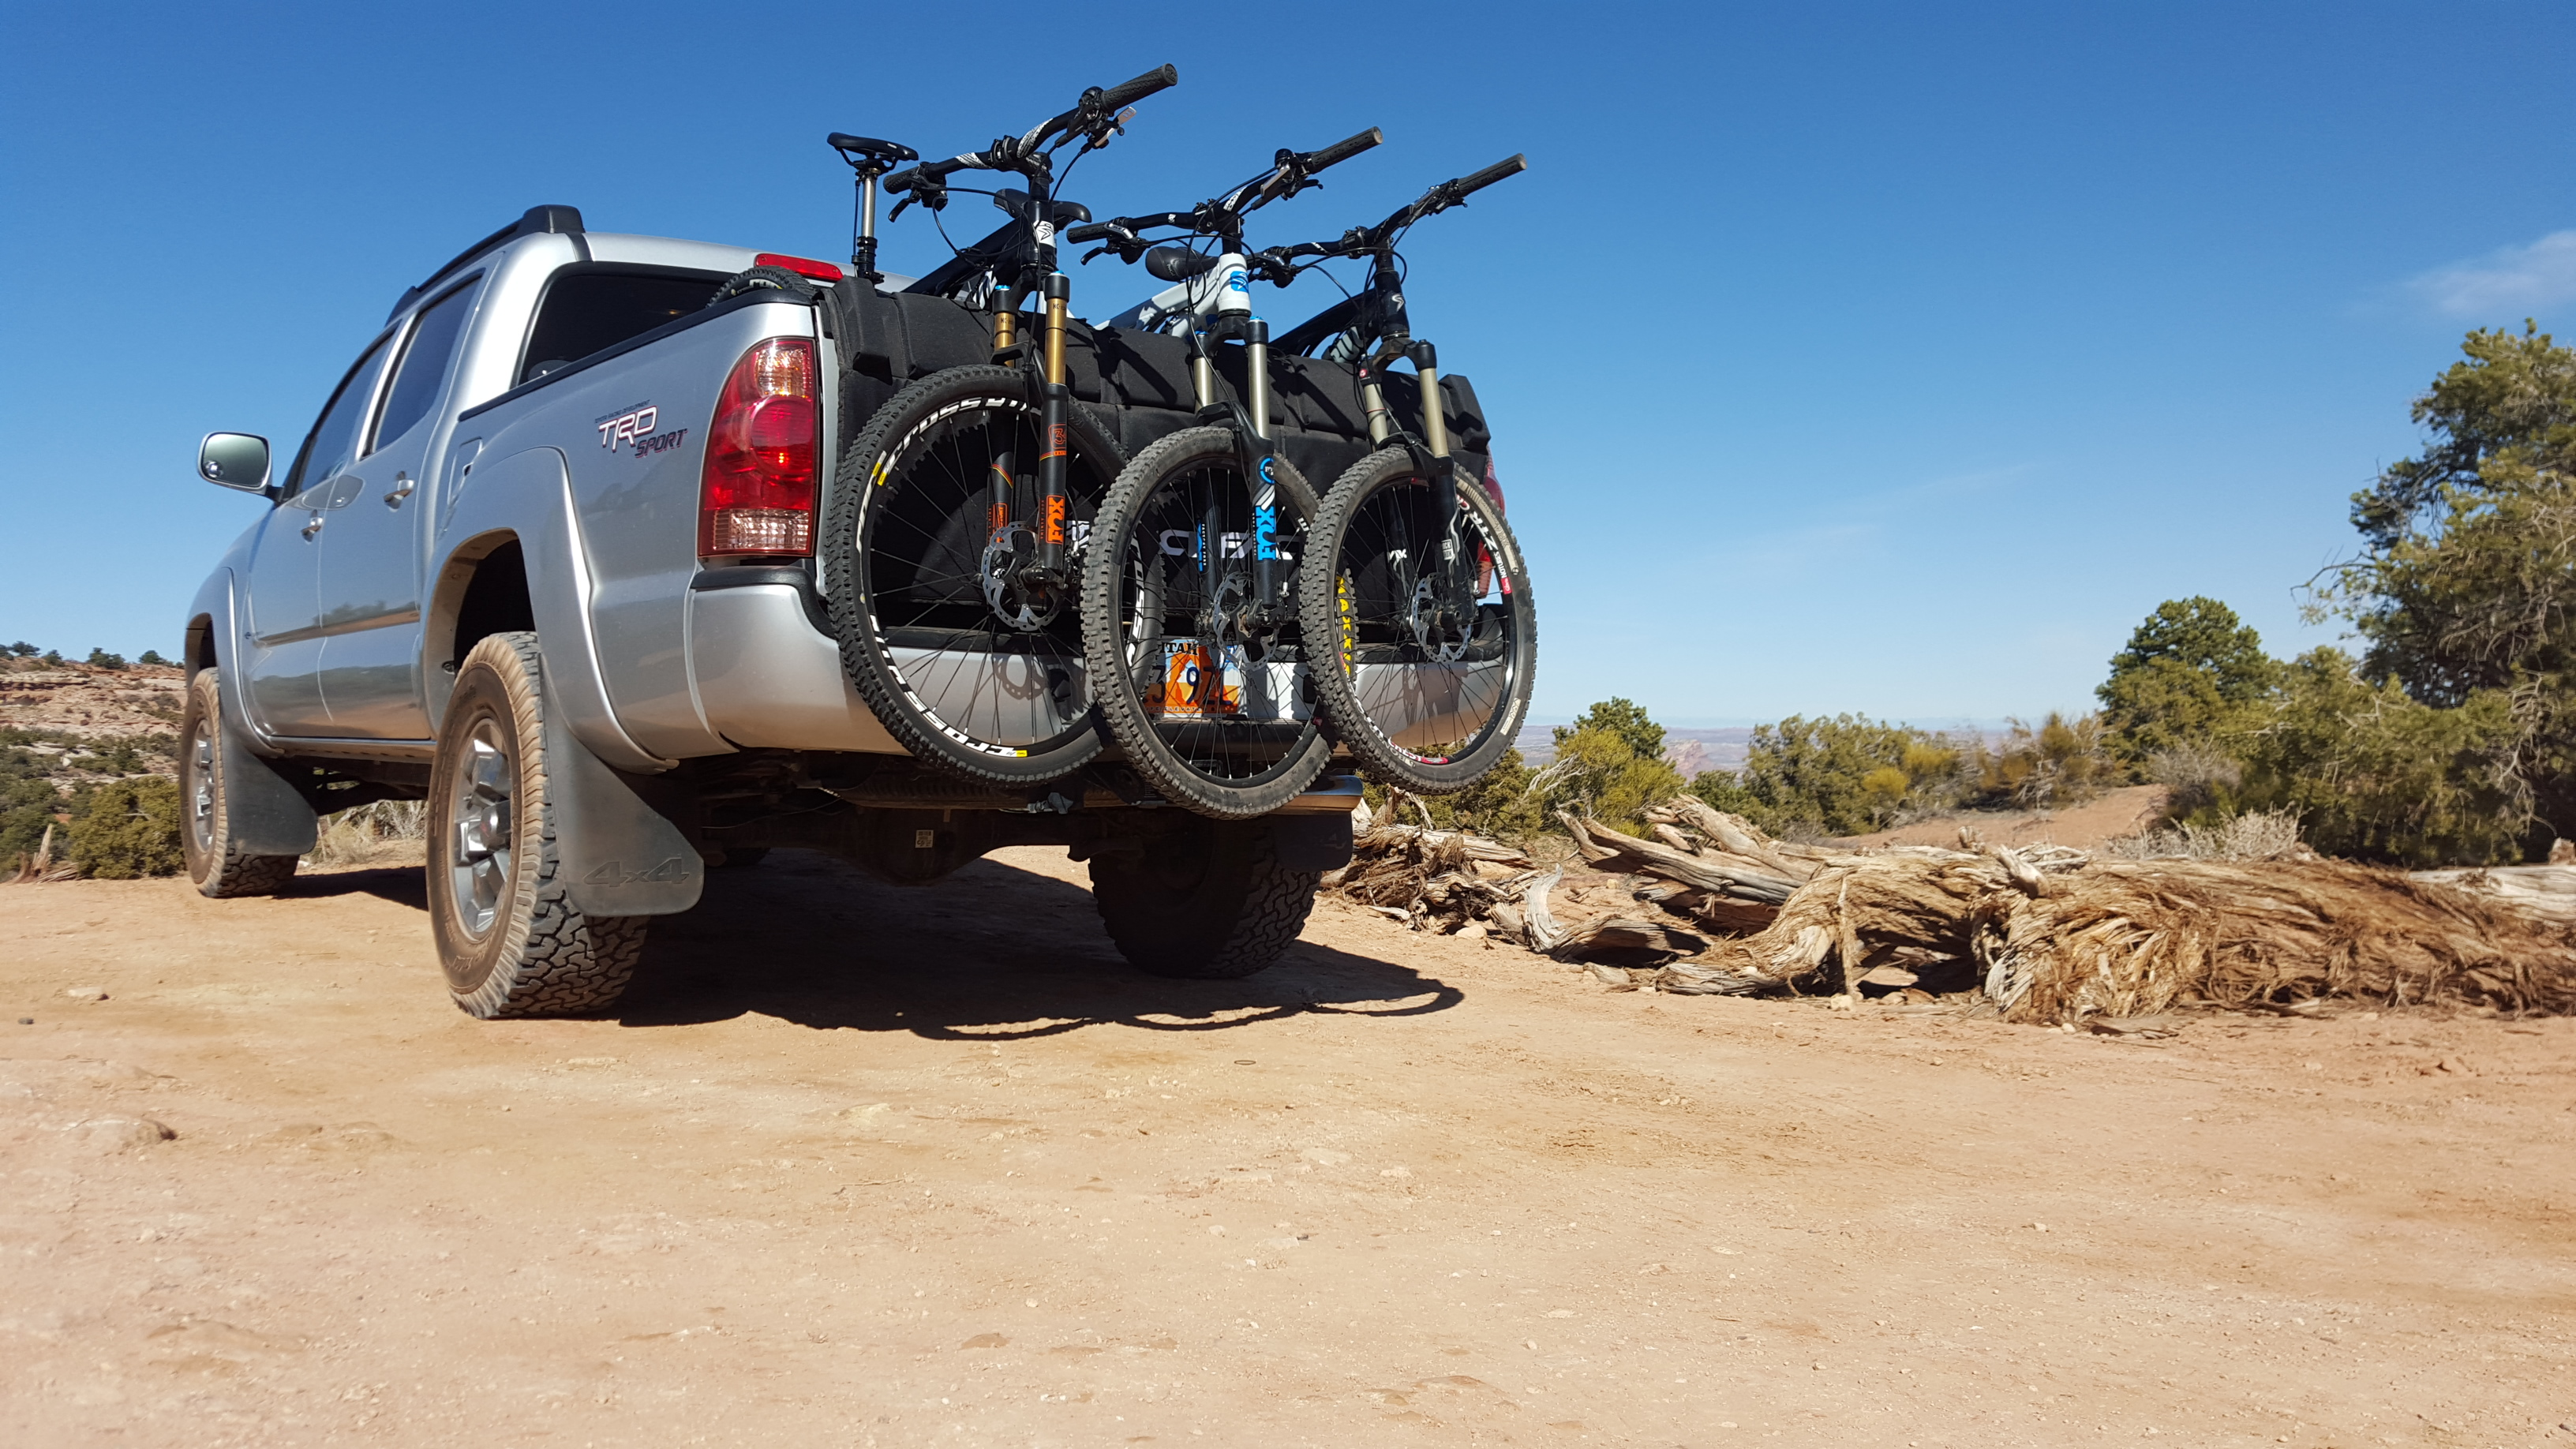 mountain bikes on a pickup truck taiilgate pad